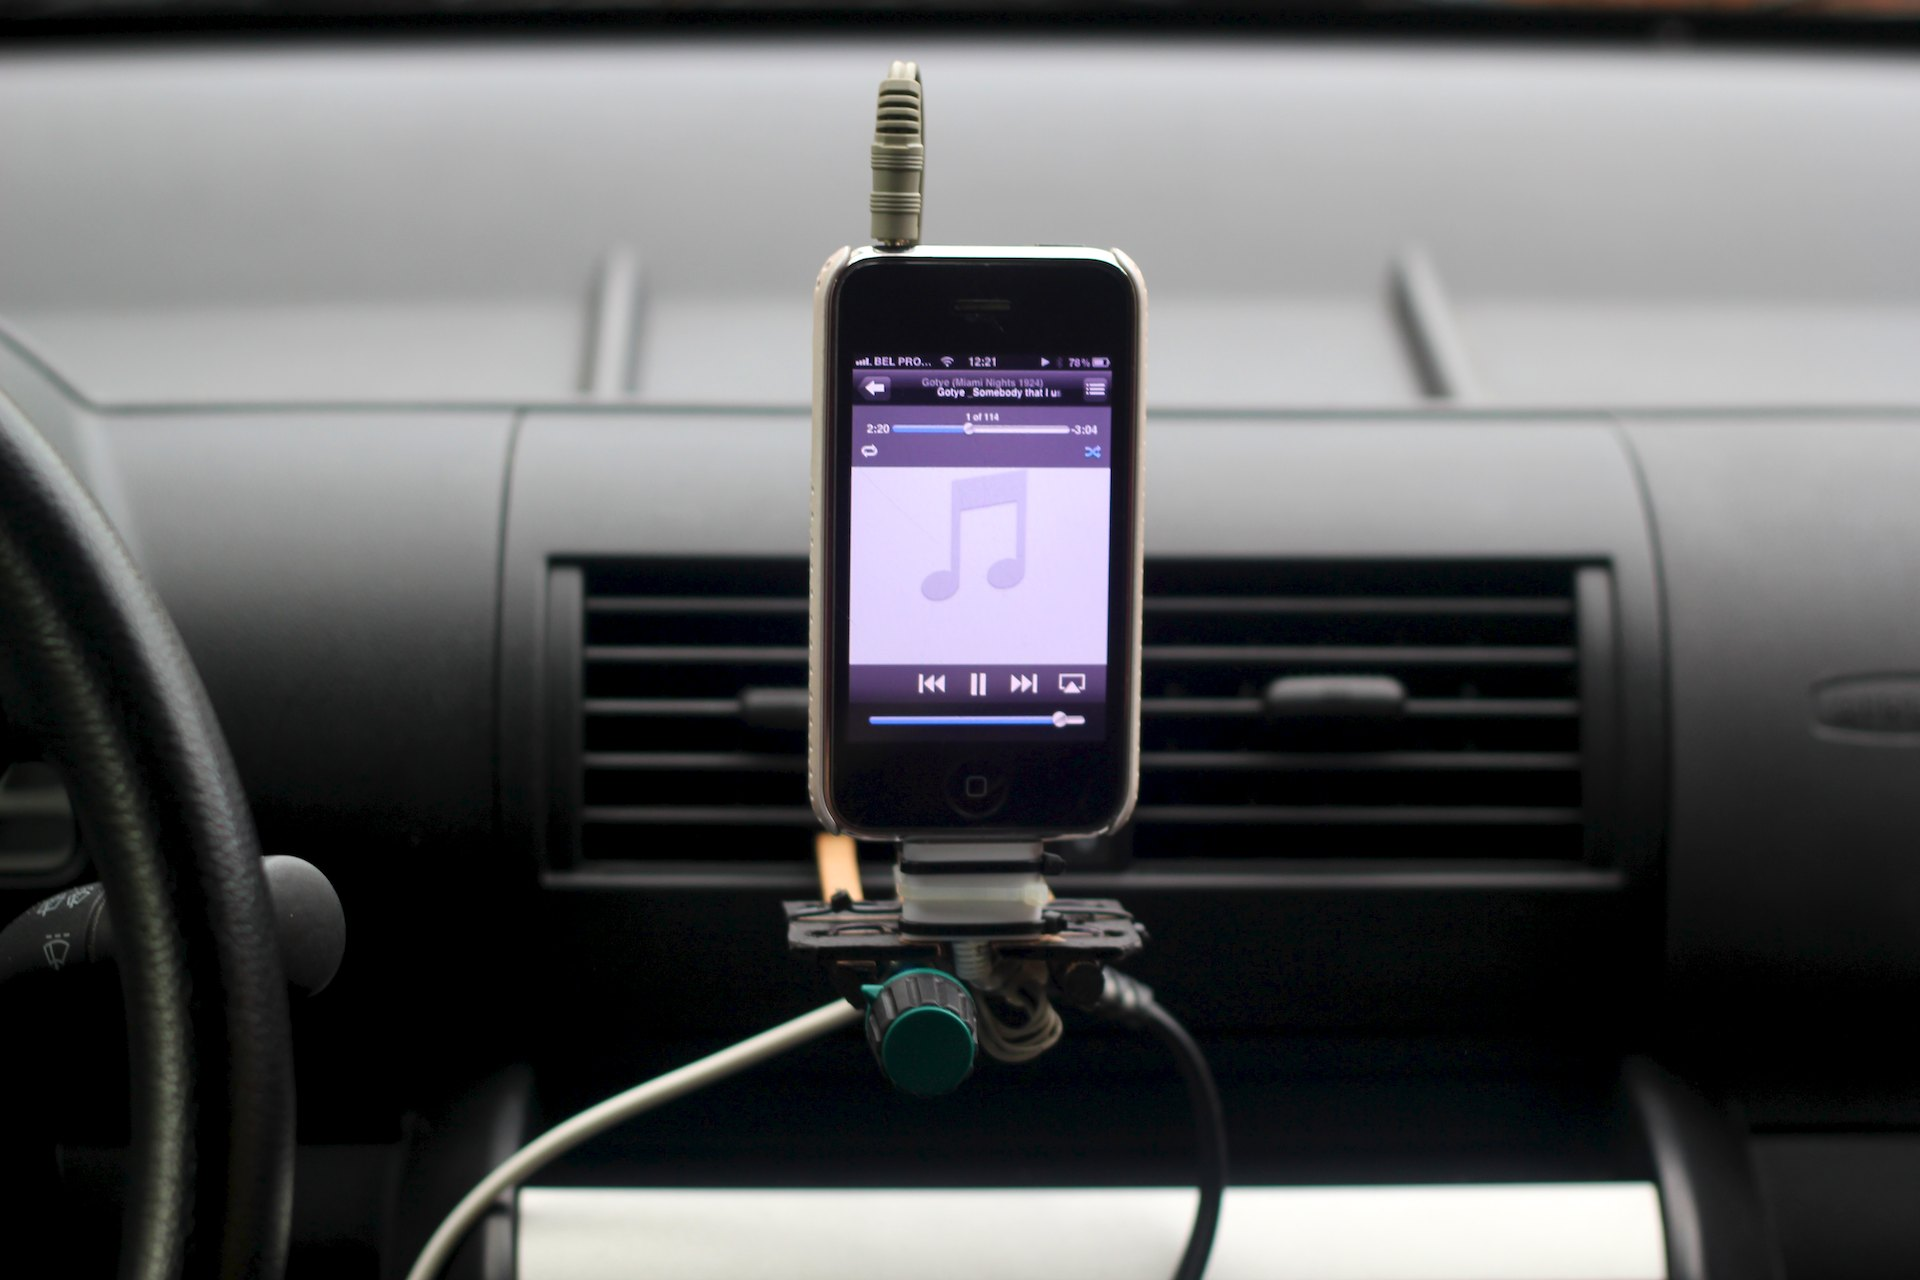 Car-iphone-dock-4